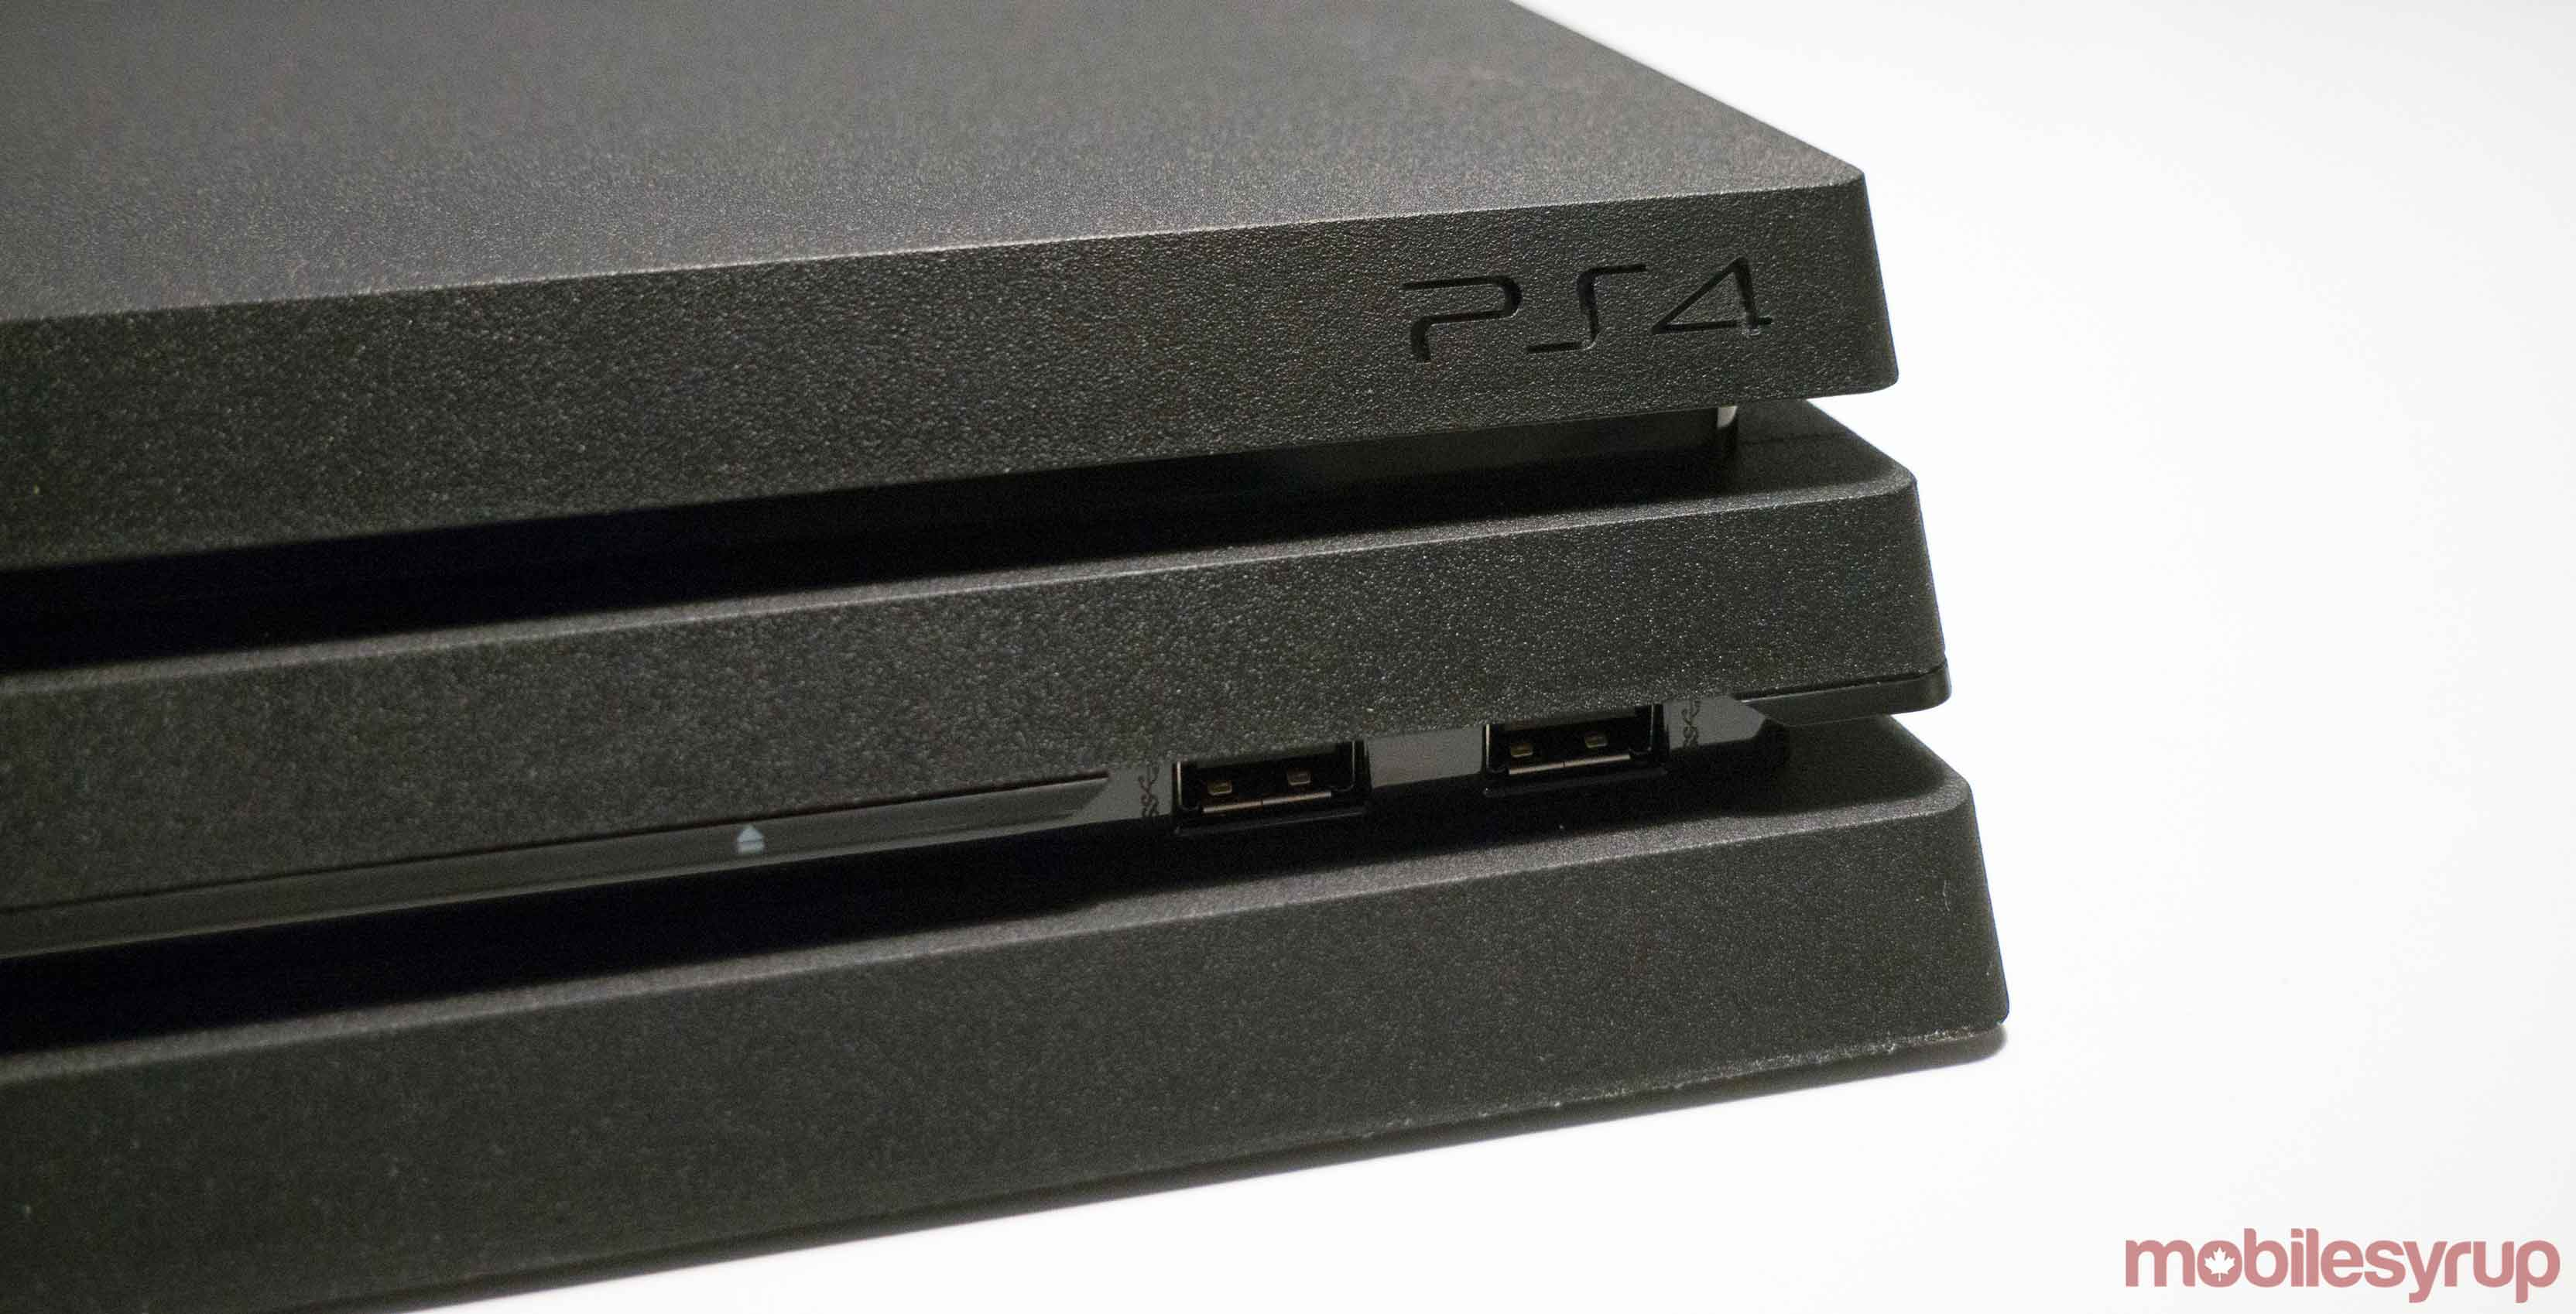 PS5 Unlikely To Launch Before 2020 - Developer Sources